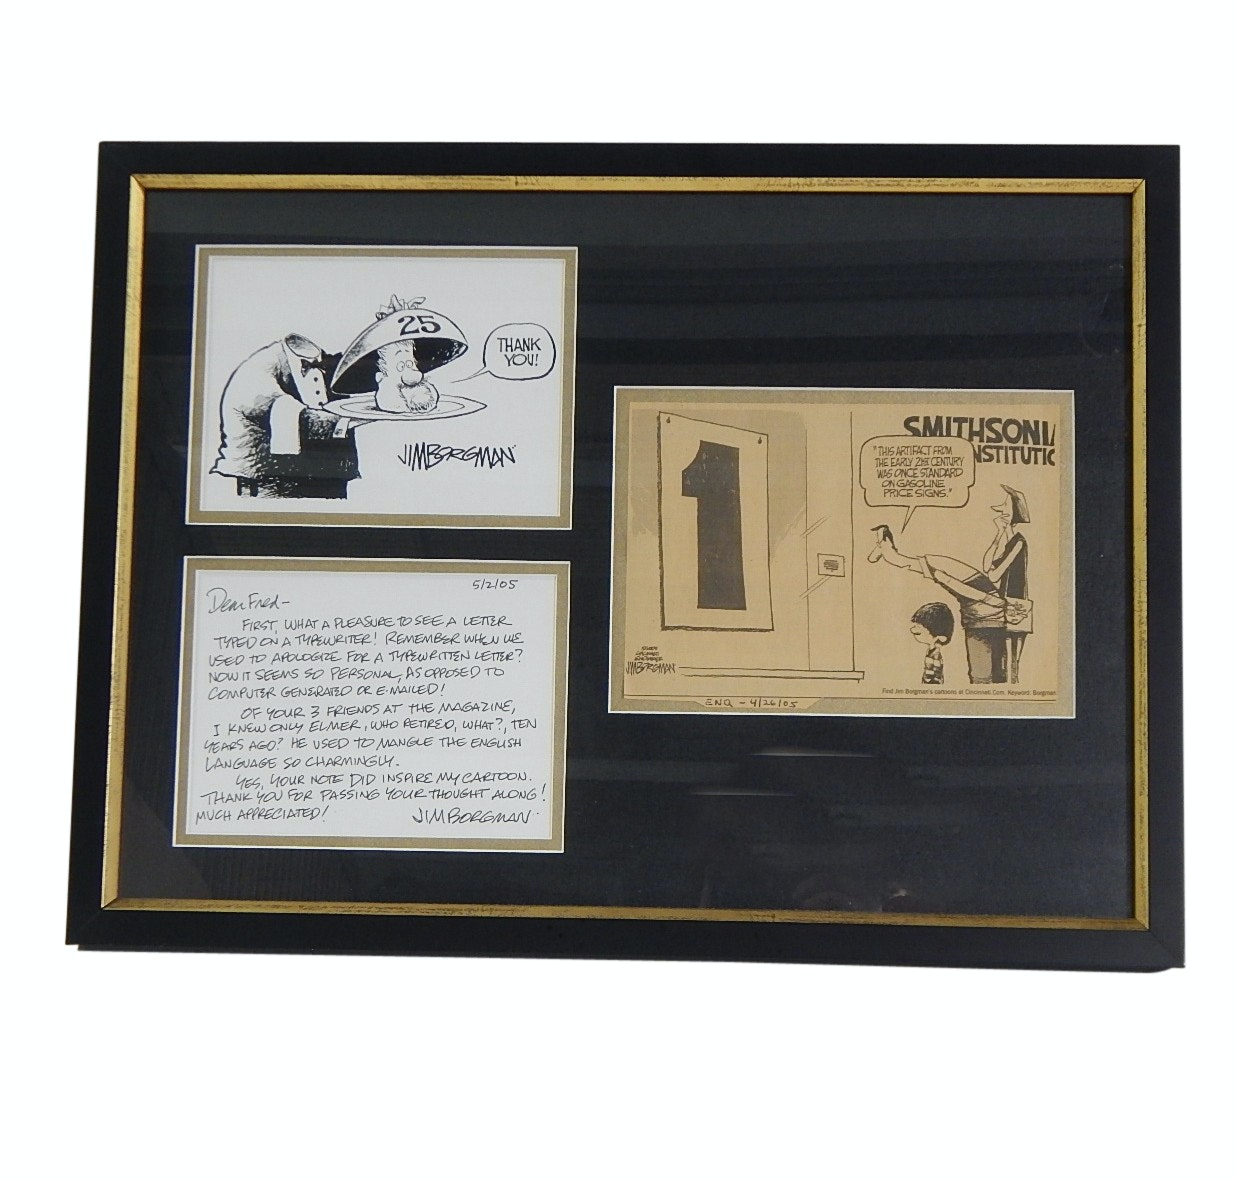 Cincinnati Cartoonist Jim Borgman Framed Cartoons and Personalized Letter